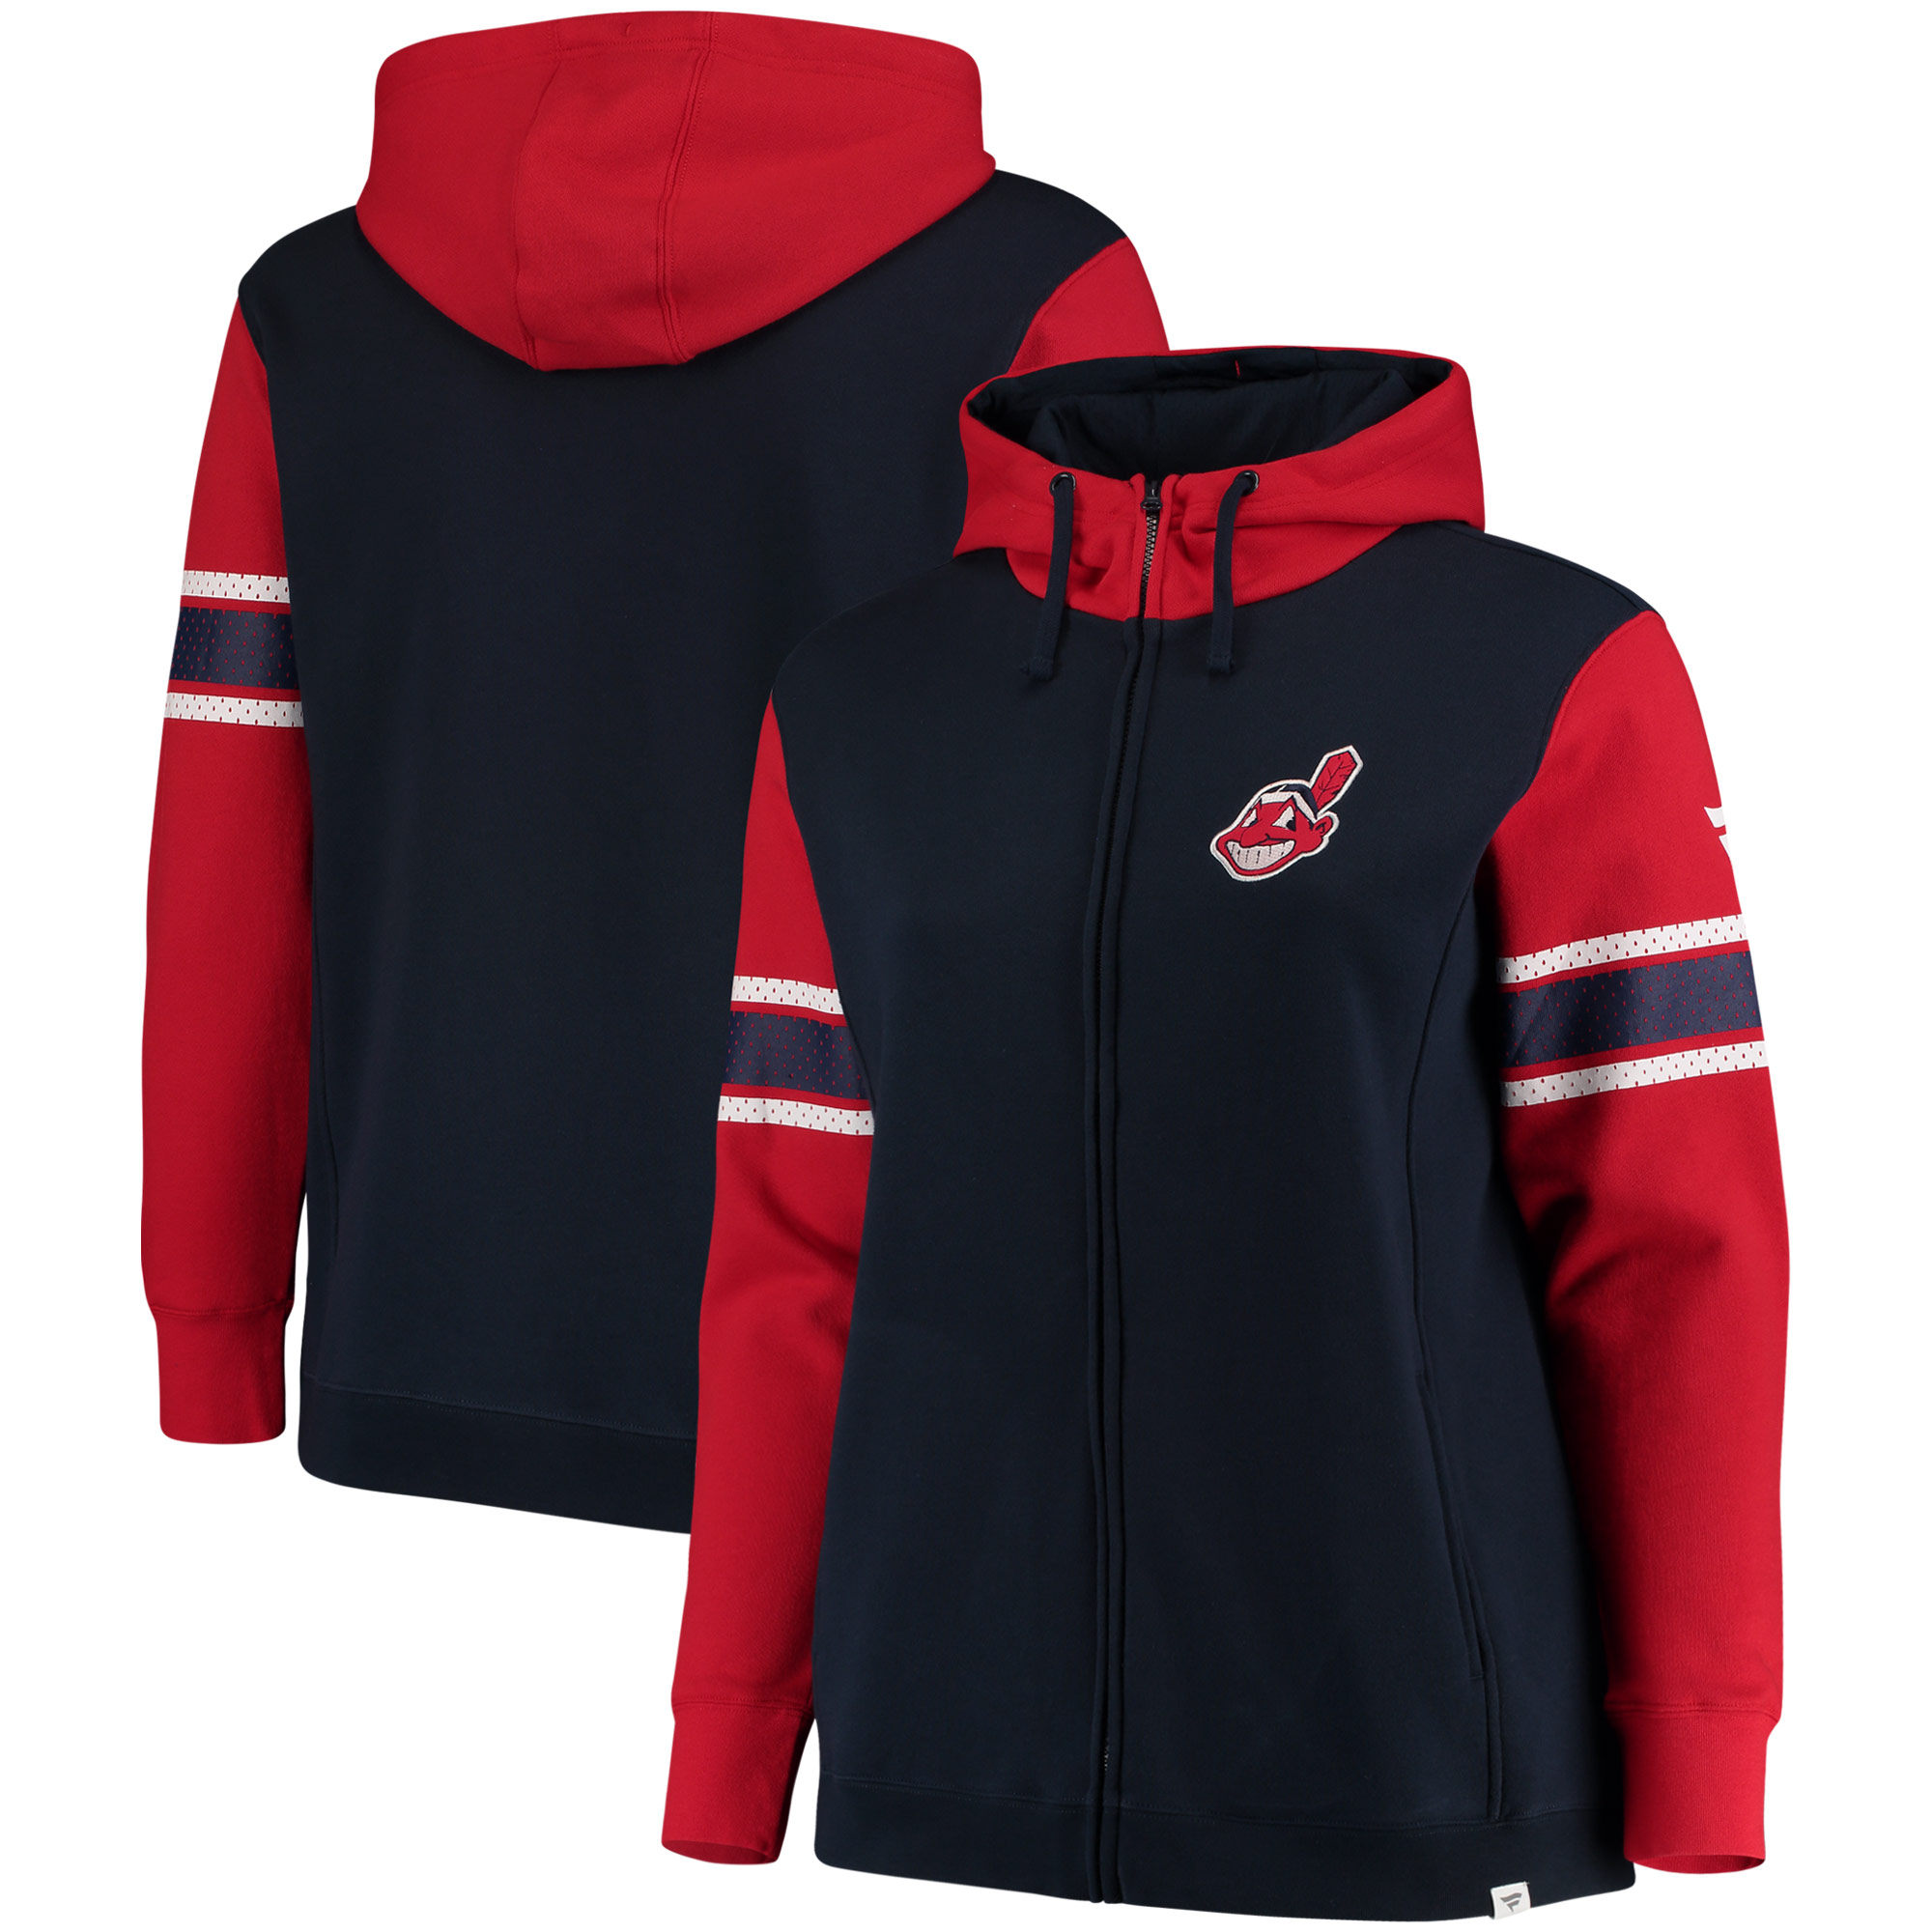 Women's Fanatics Branded Navy Cleveland Indians Plus Size Iconic Fleece Full-Zip Hoodie